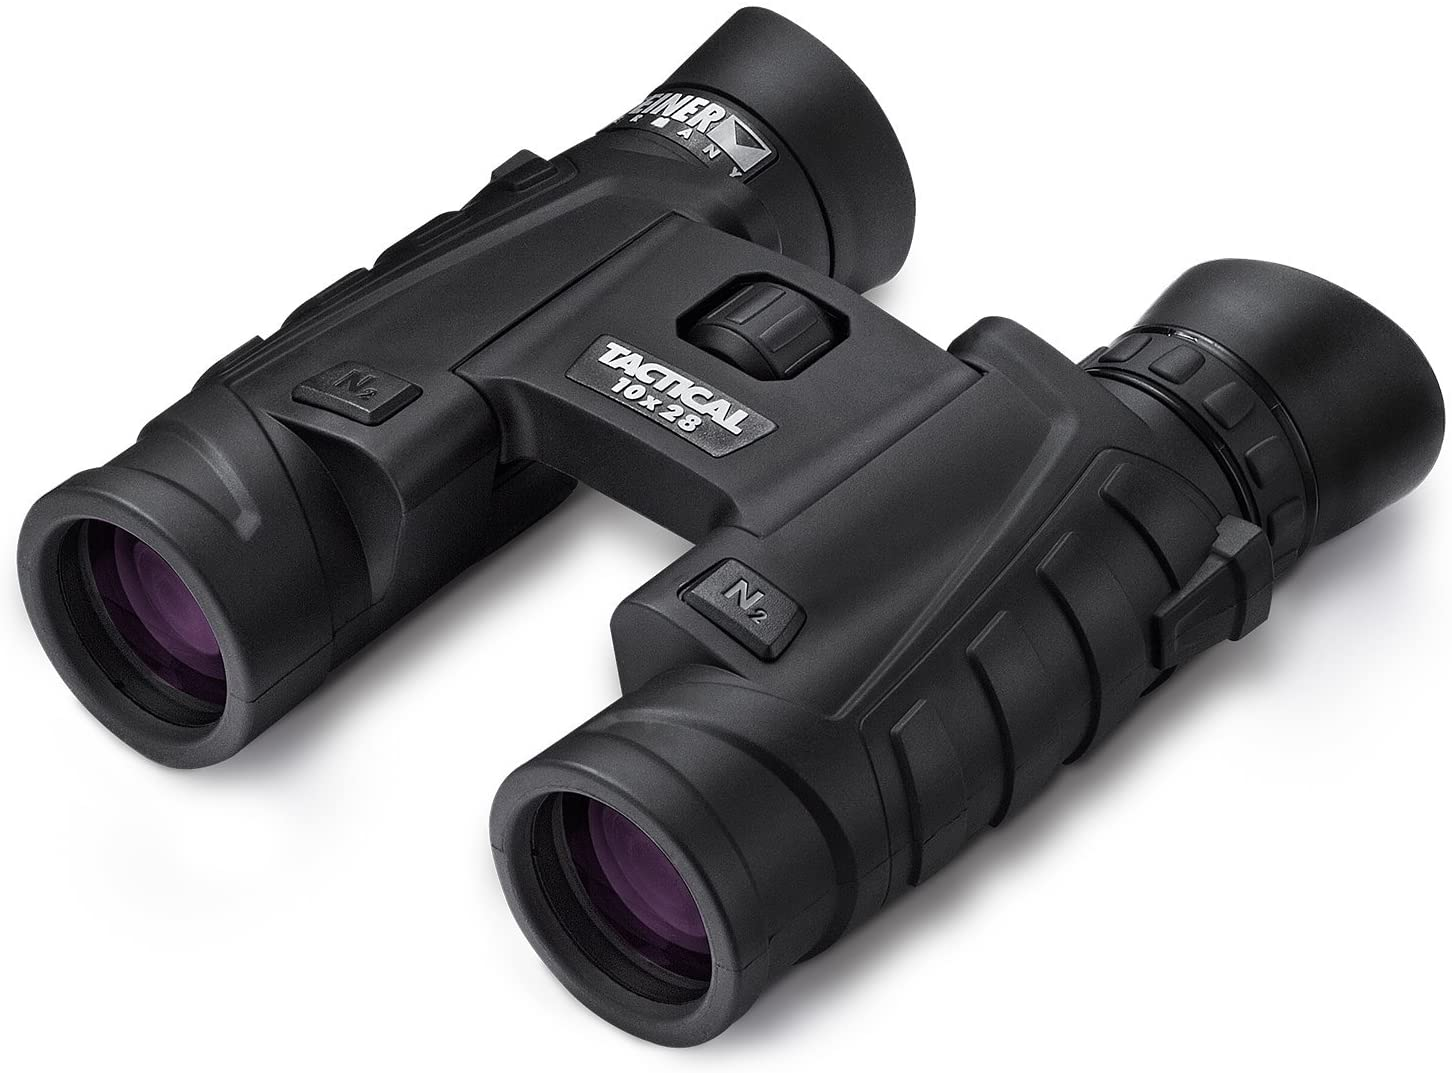 Top 10 Best Compact Binoculars 2020 Reviews 1